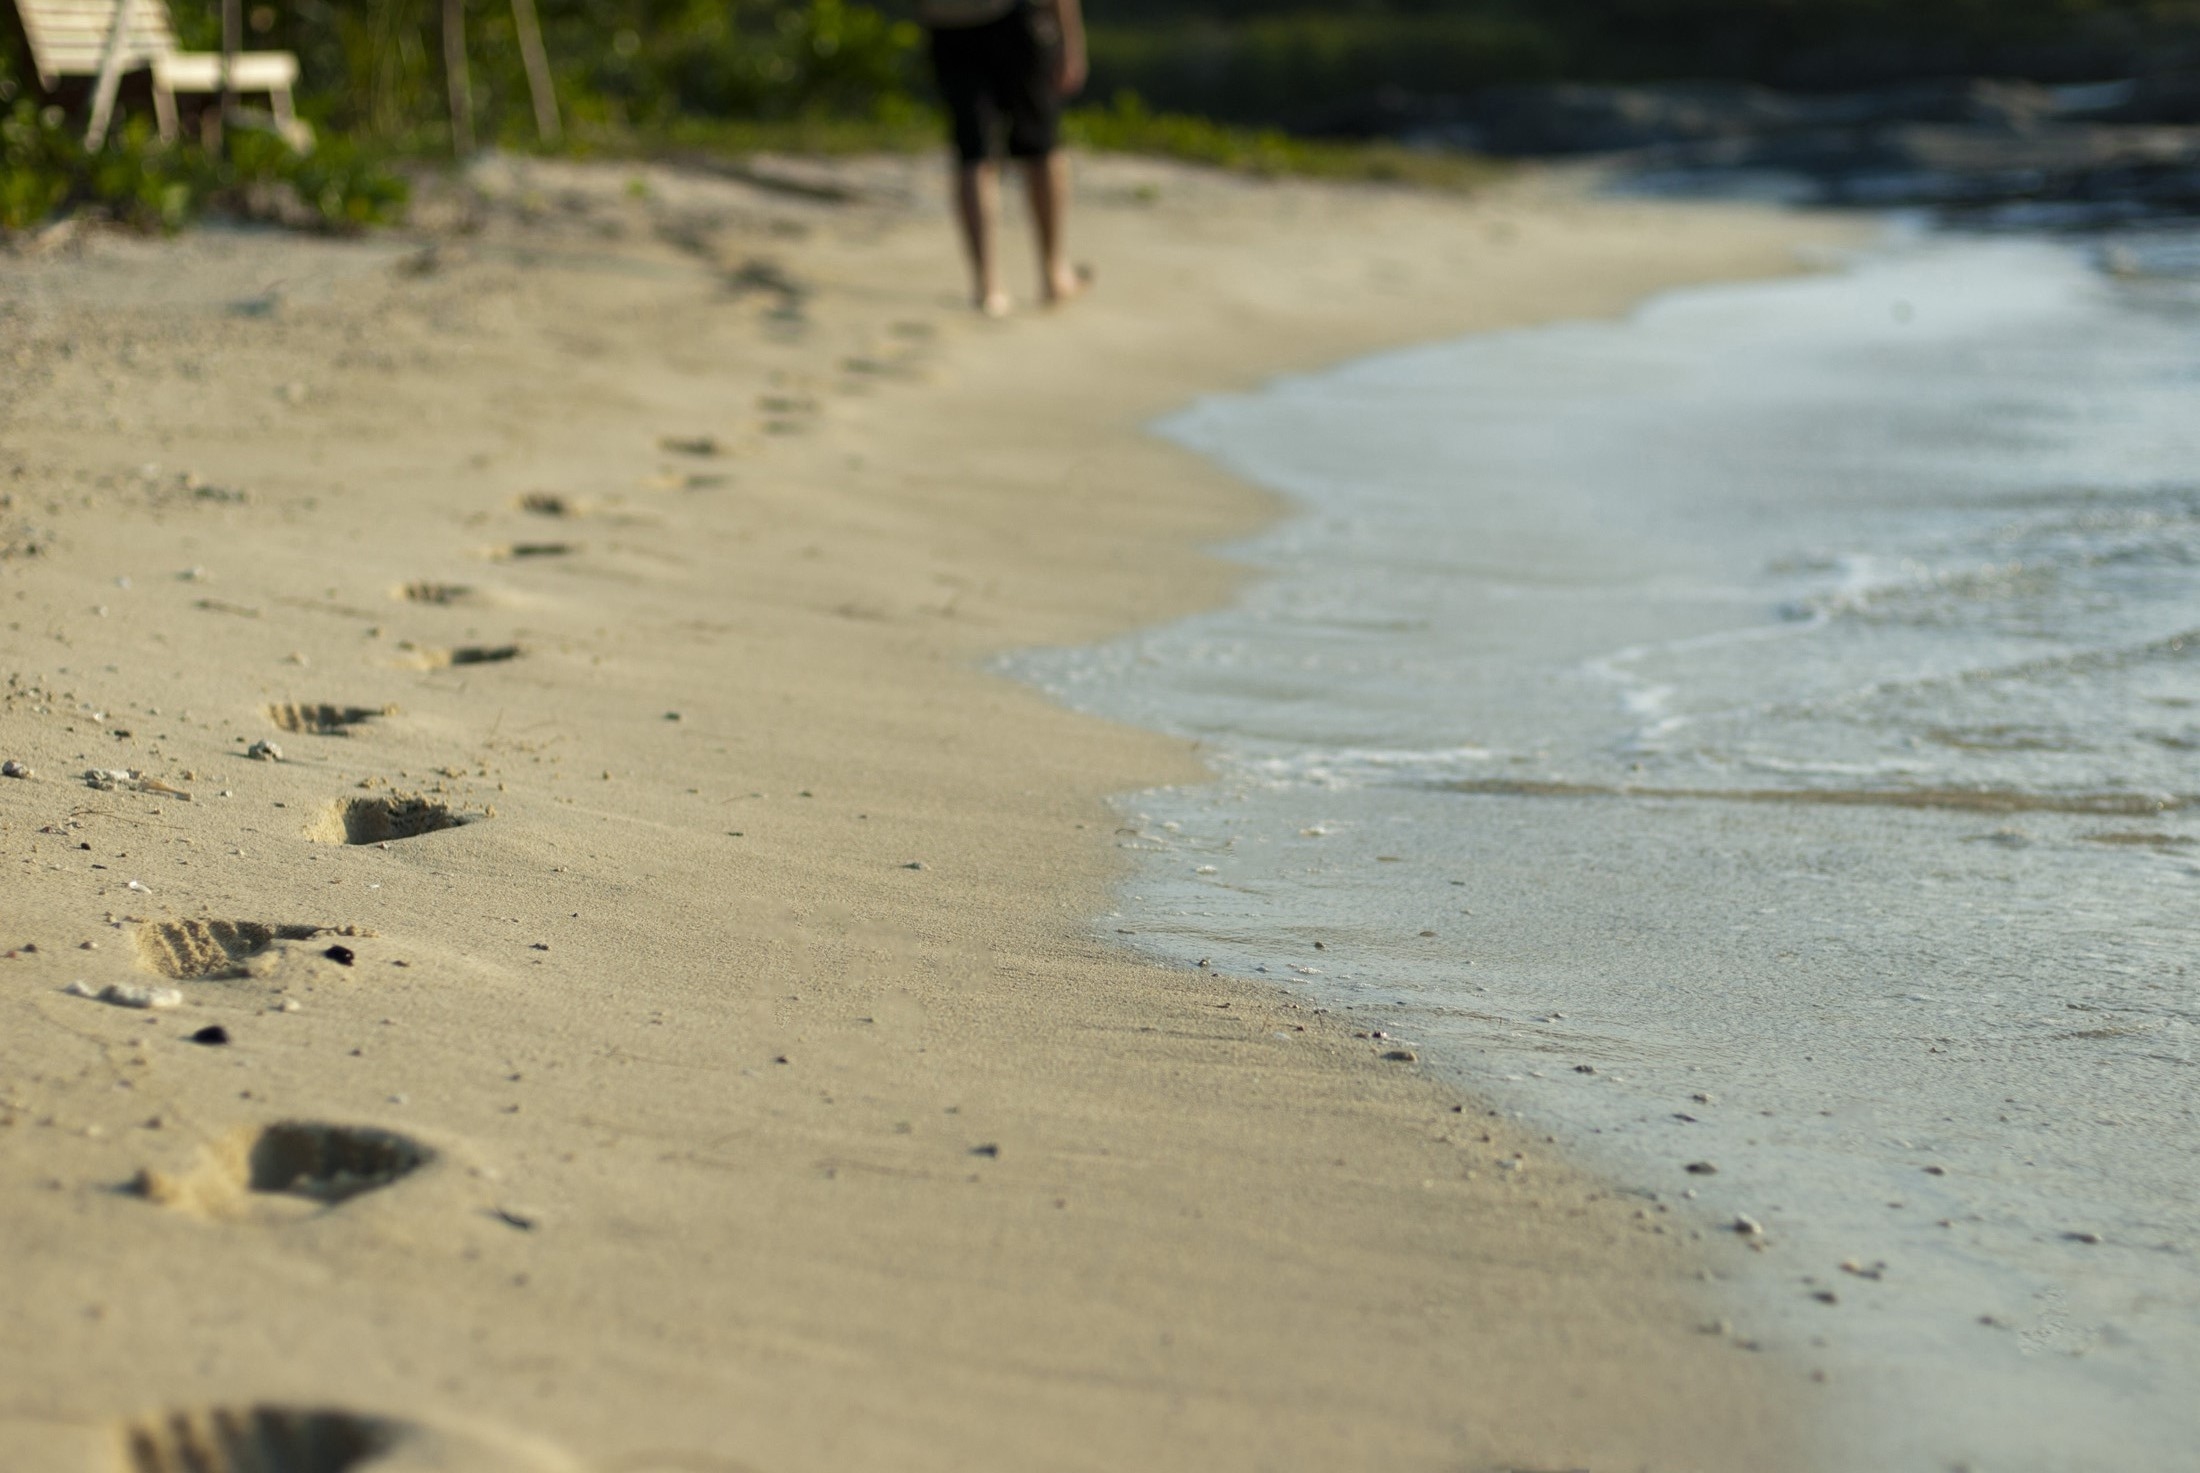 Man disappearing into the distance walking on a sandy beach close to the sea with footprints and shallow dof